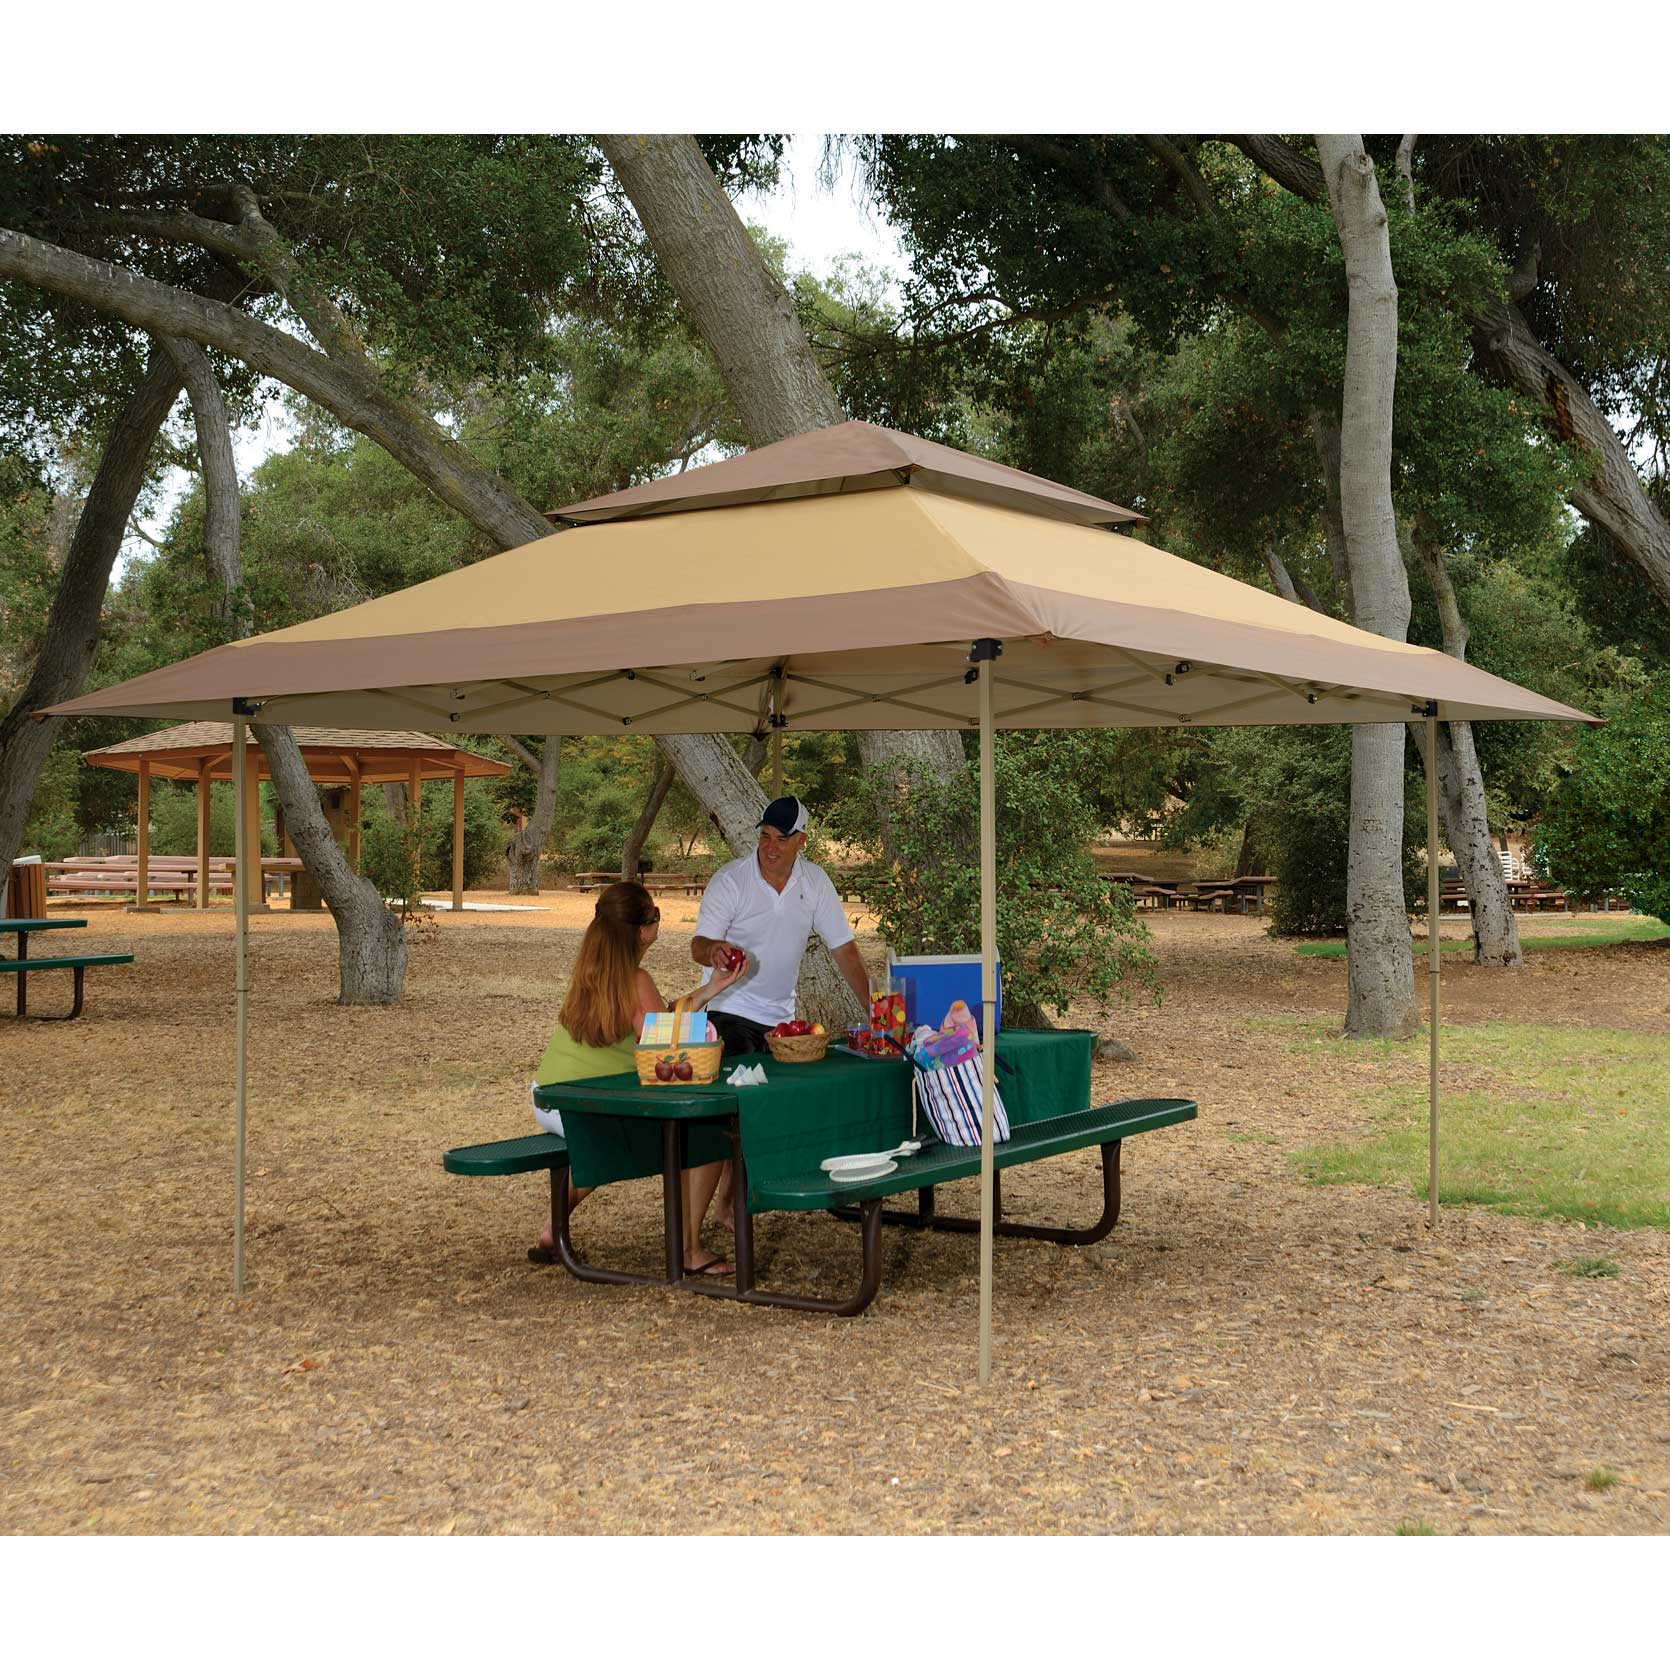 Z Shade 13 X Foot Instant Gazebo Canopy Tent Outdoor Patio Shelter Tan Brown